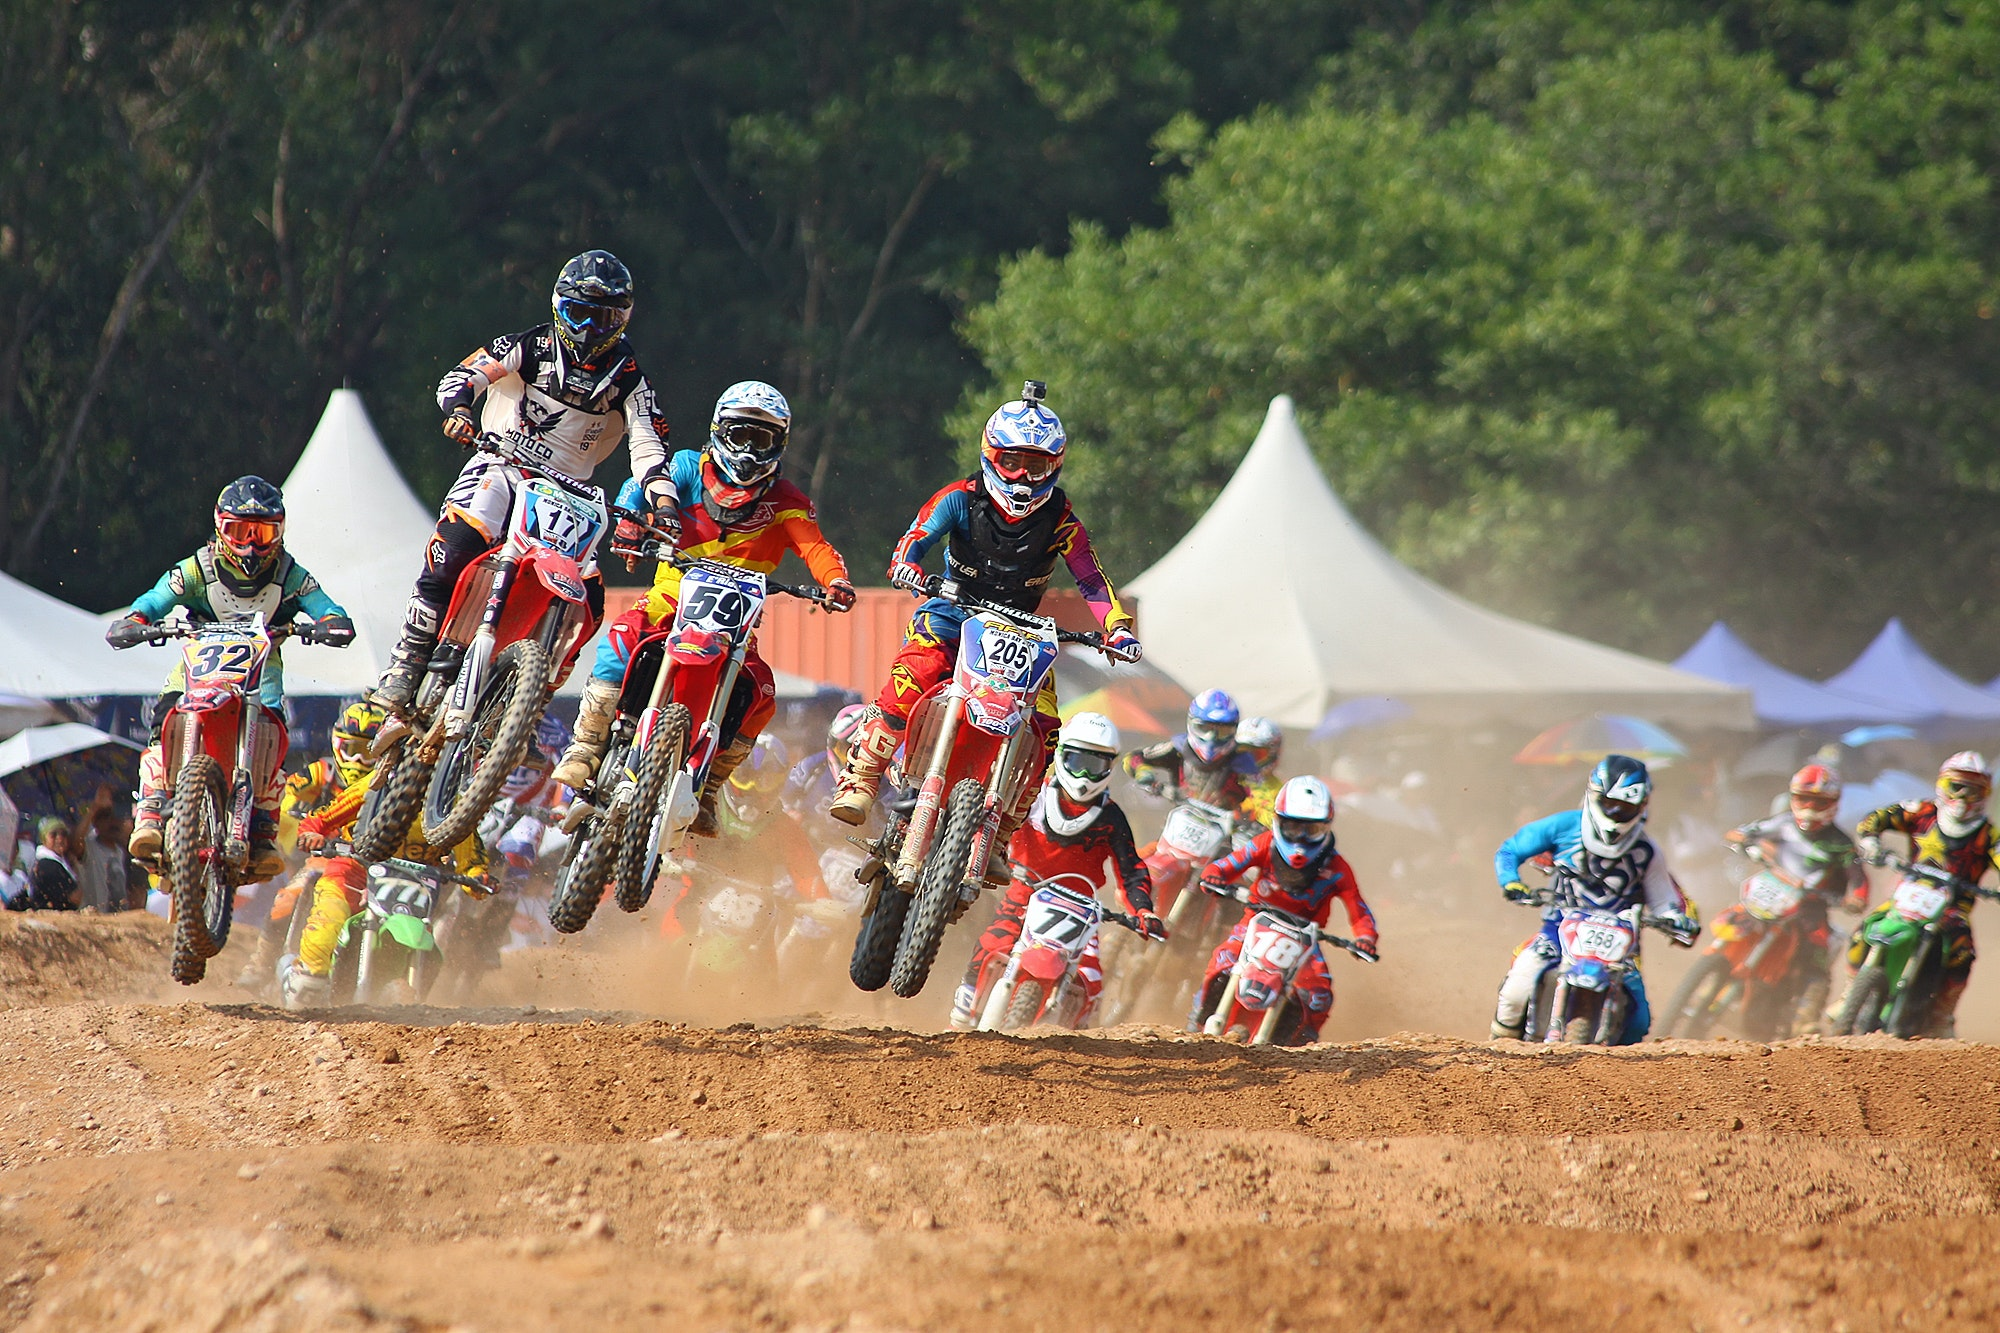 A group of people racing each other on a dirt road